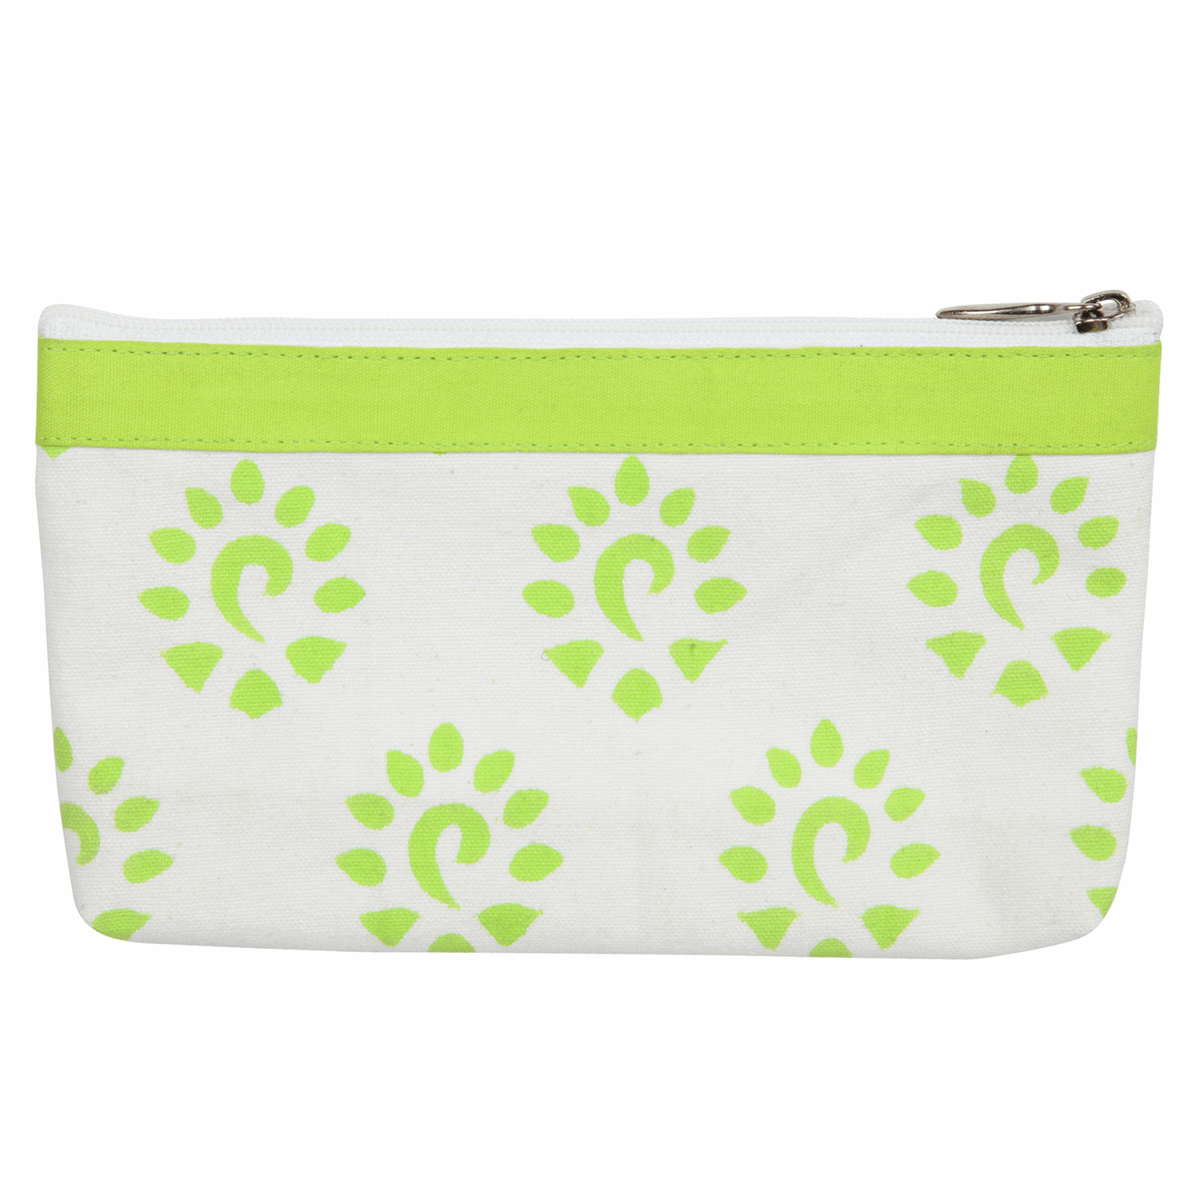 Picture of Amber: Fabric & Vinyl Zipped Pouch: Small